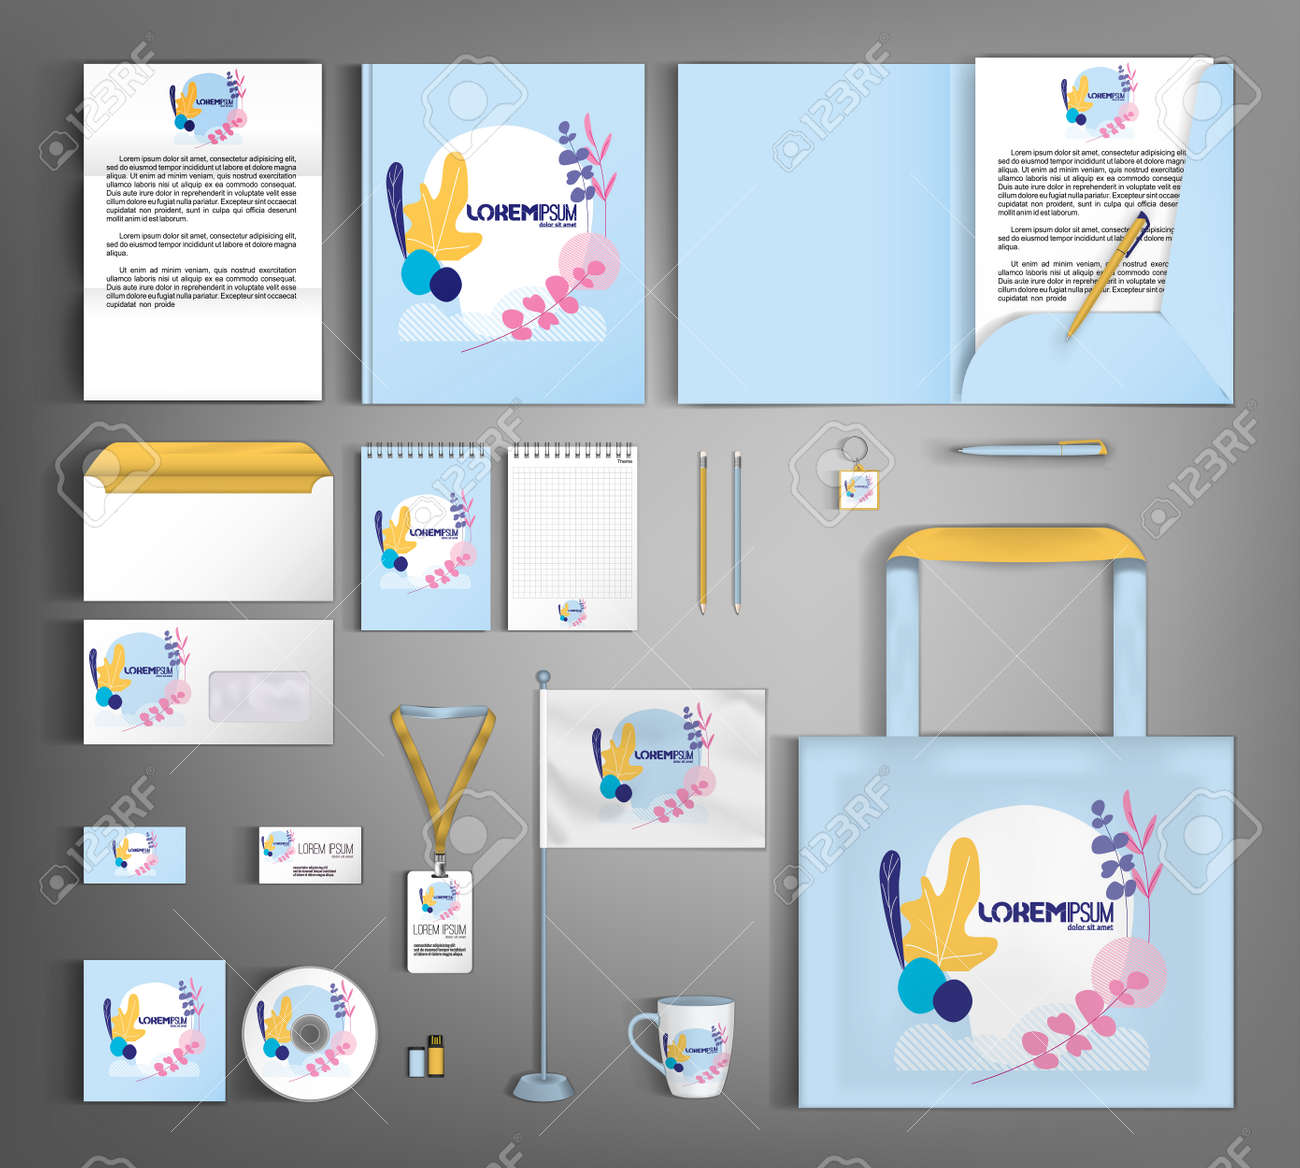 Corporate identity template with minimalist style floral ornament. Set of business office supplies. - 157164300